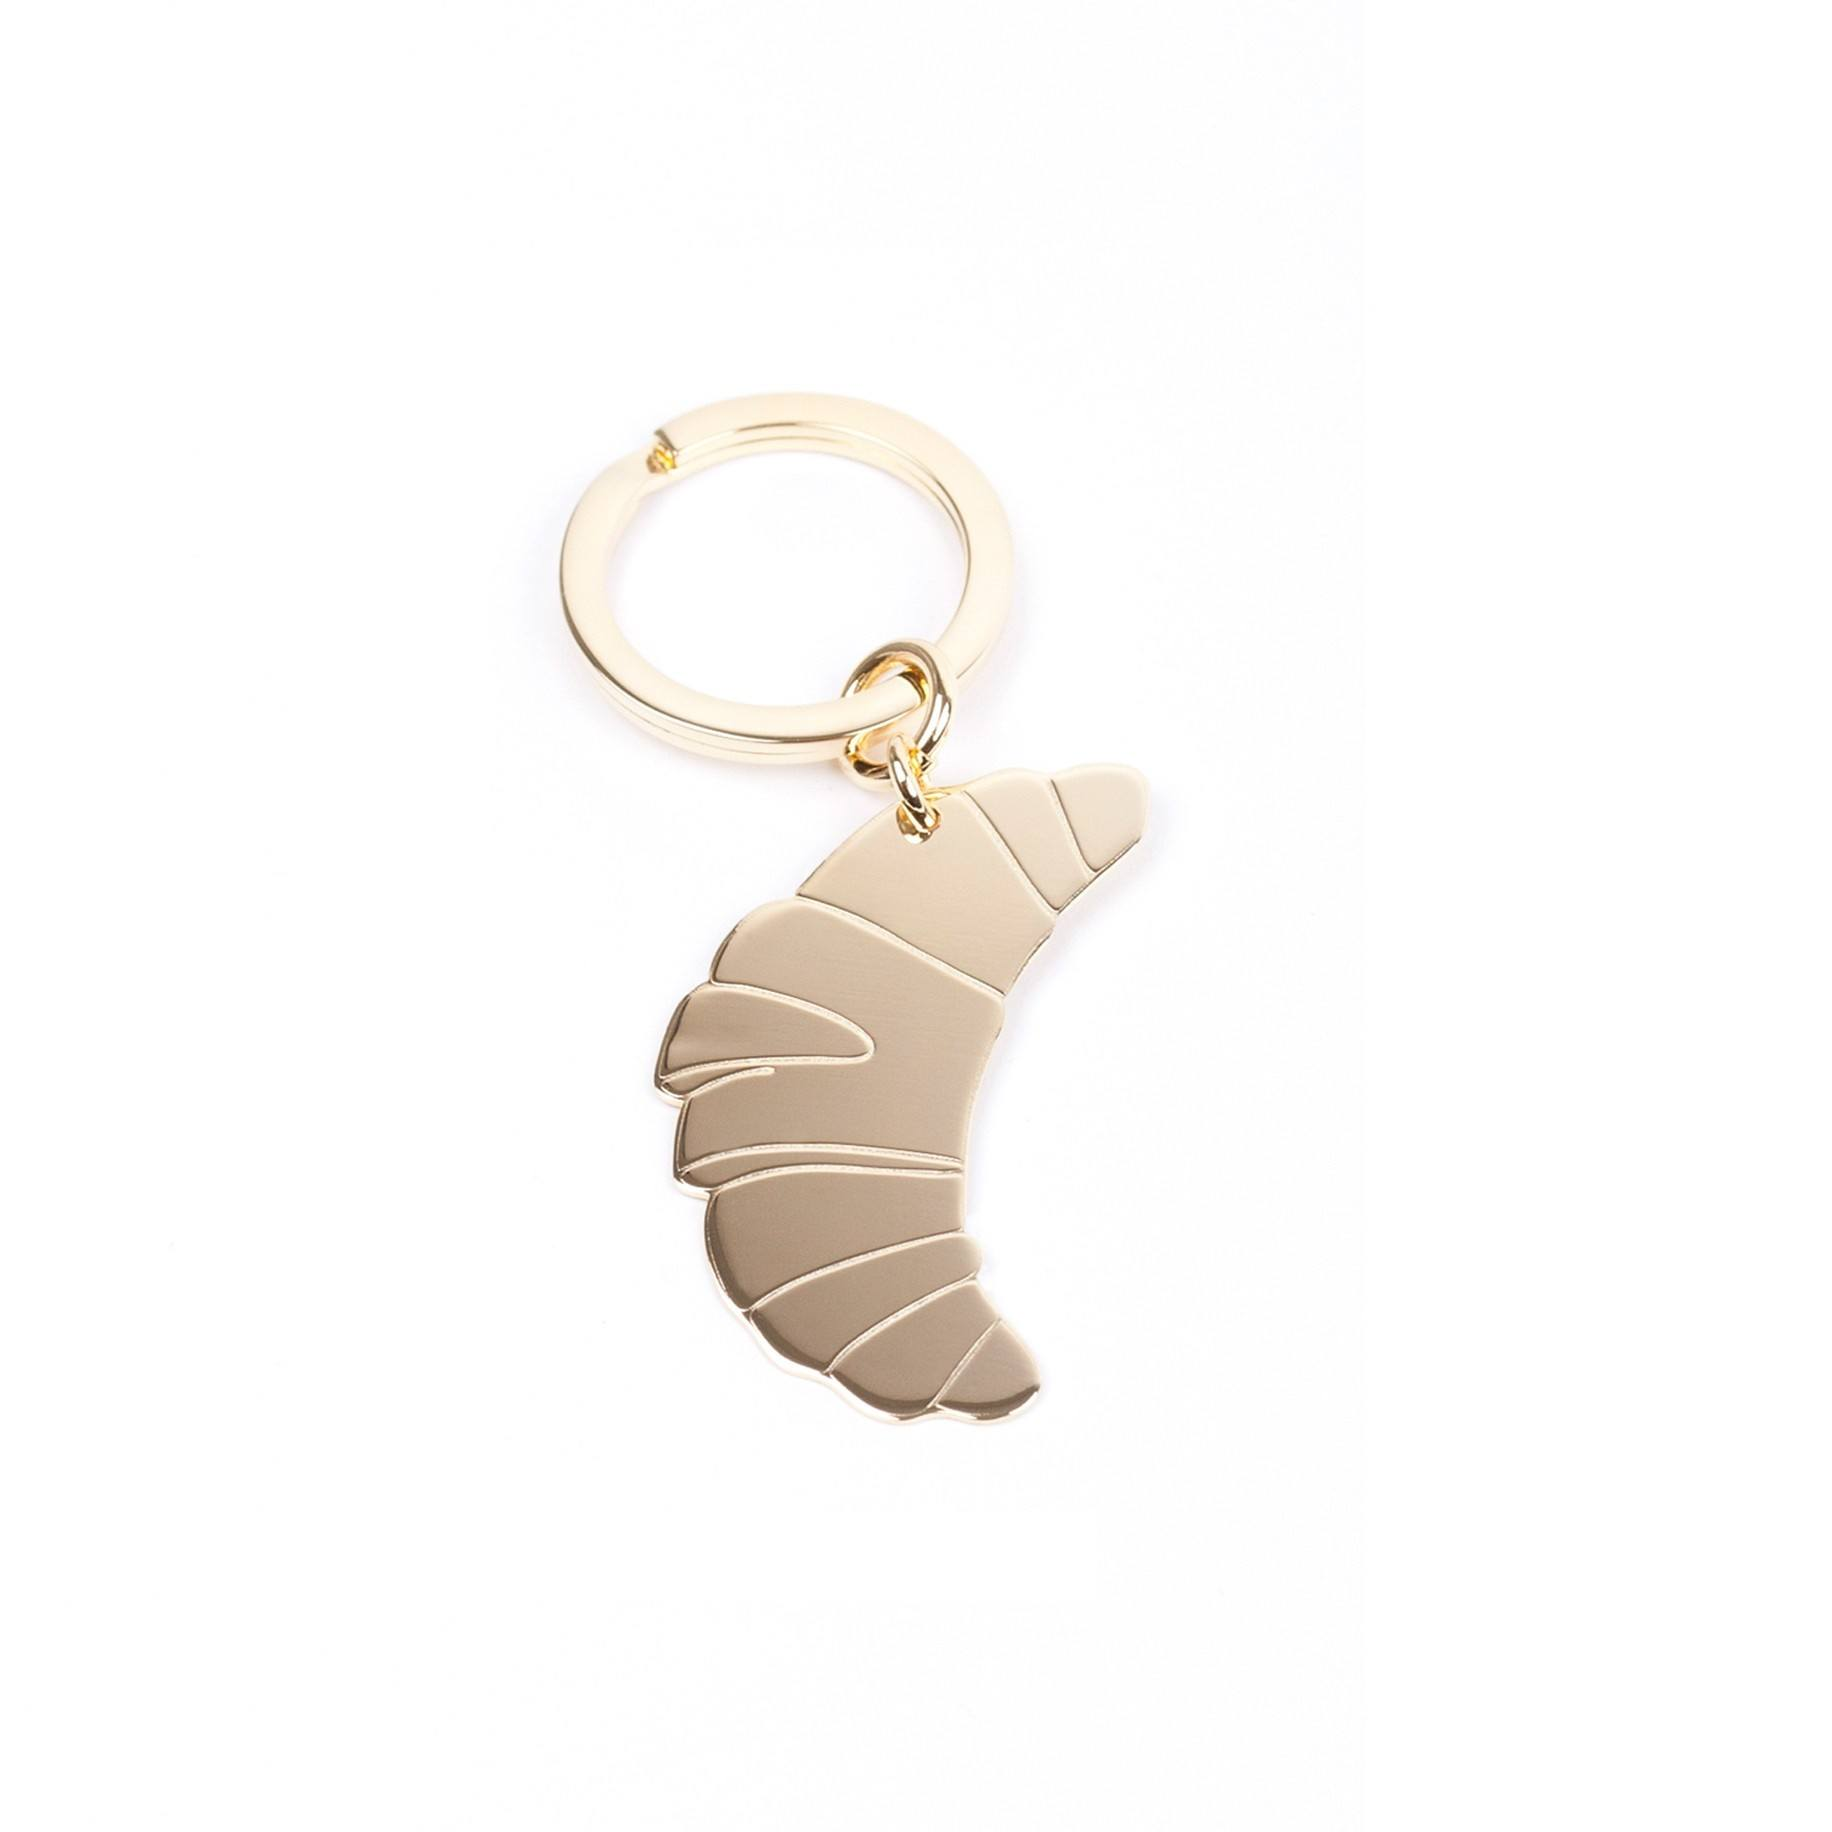 https://www.selecteddesigners.dk/media/catalog/product/j/u/jukserei-croissant-key-ring-website.jpg